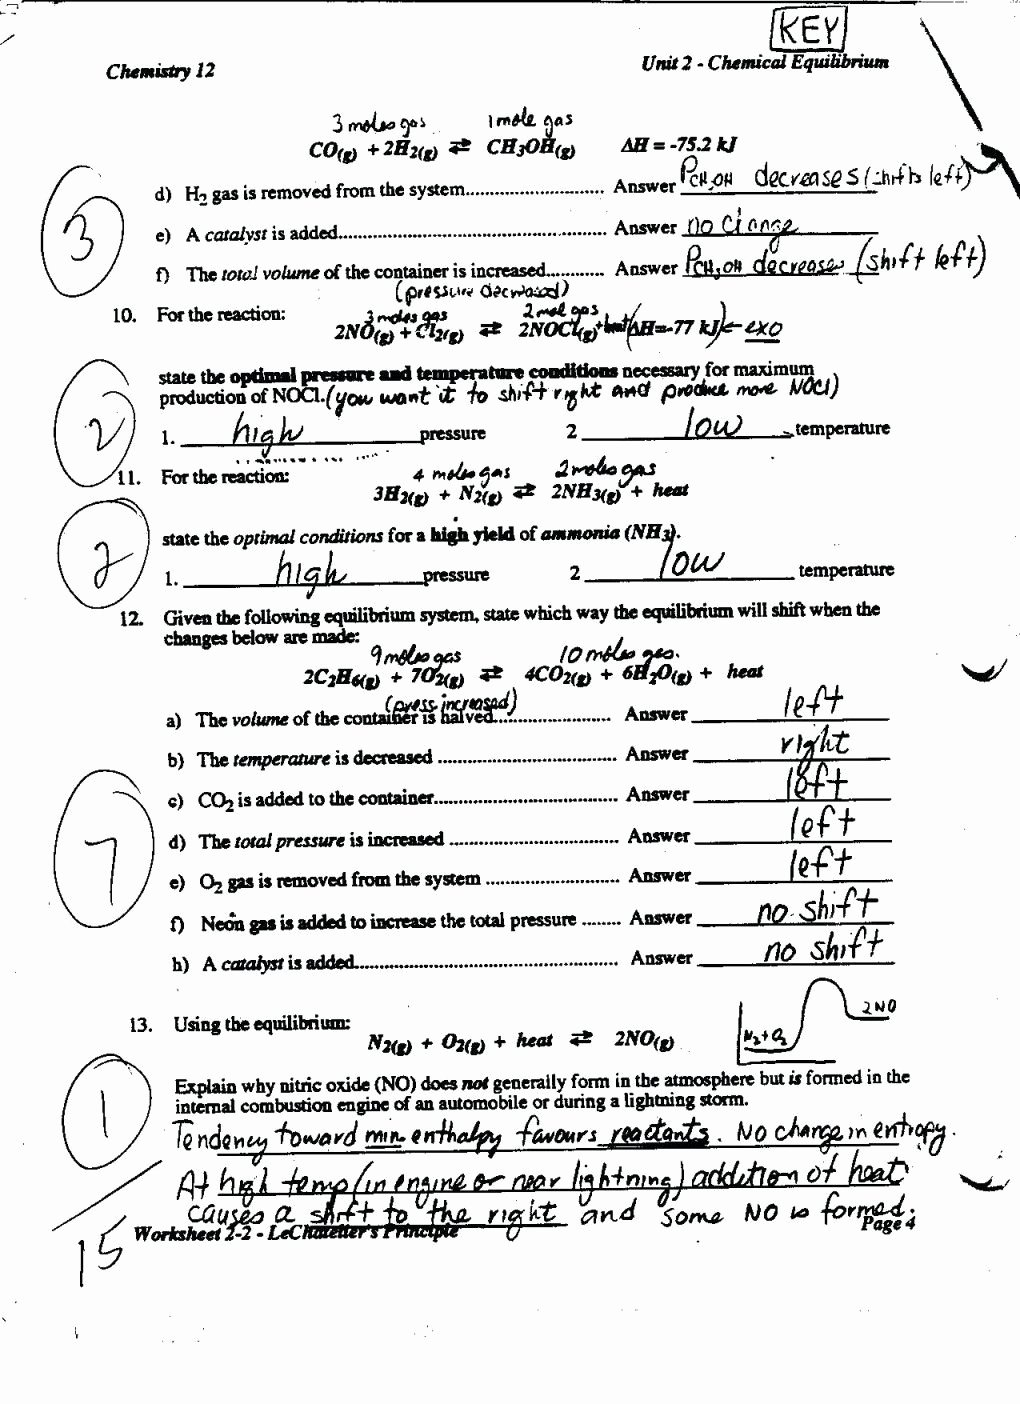 Chemistry Review Worksheet Answers Beautiful Chemistry Heating Curve Worksheet Answer Key 2 Answers Pdf